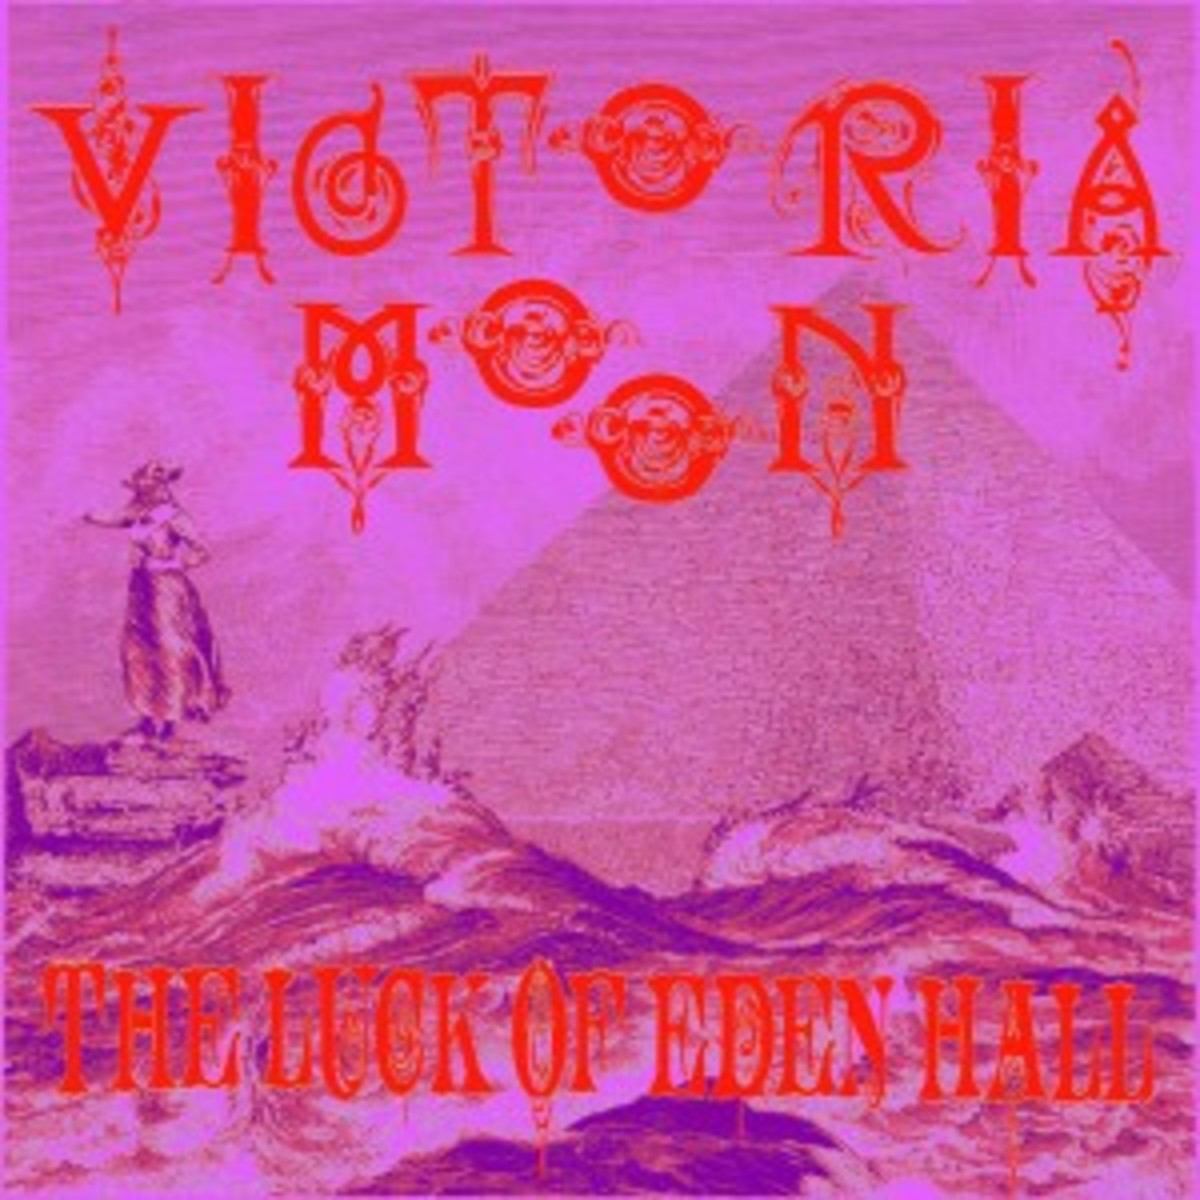 Victoria-Moon-Front-Cover-CDBaby